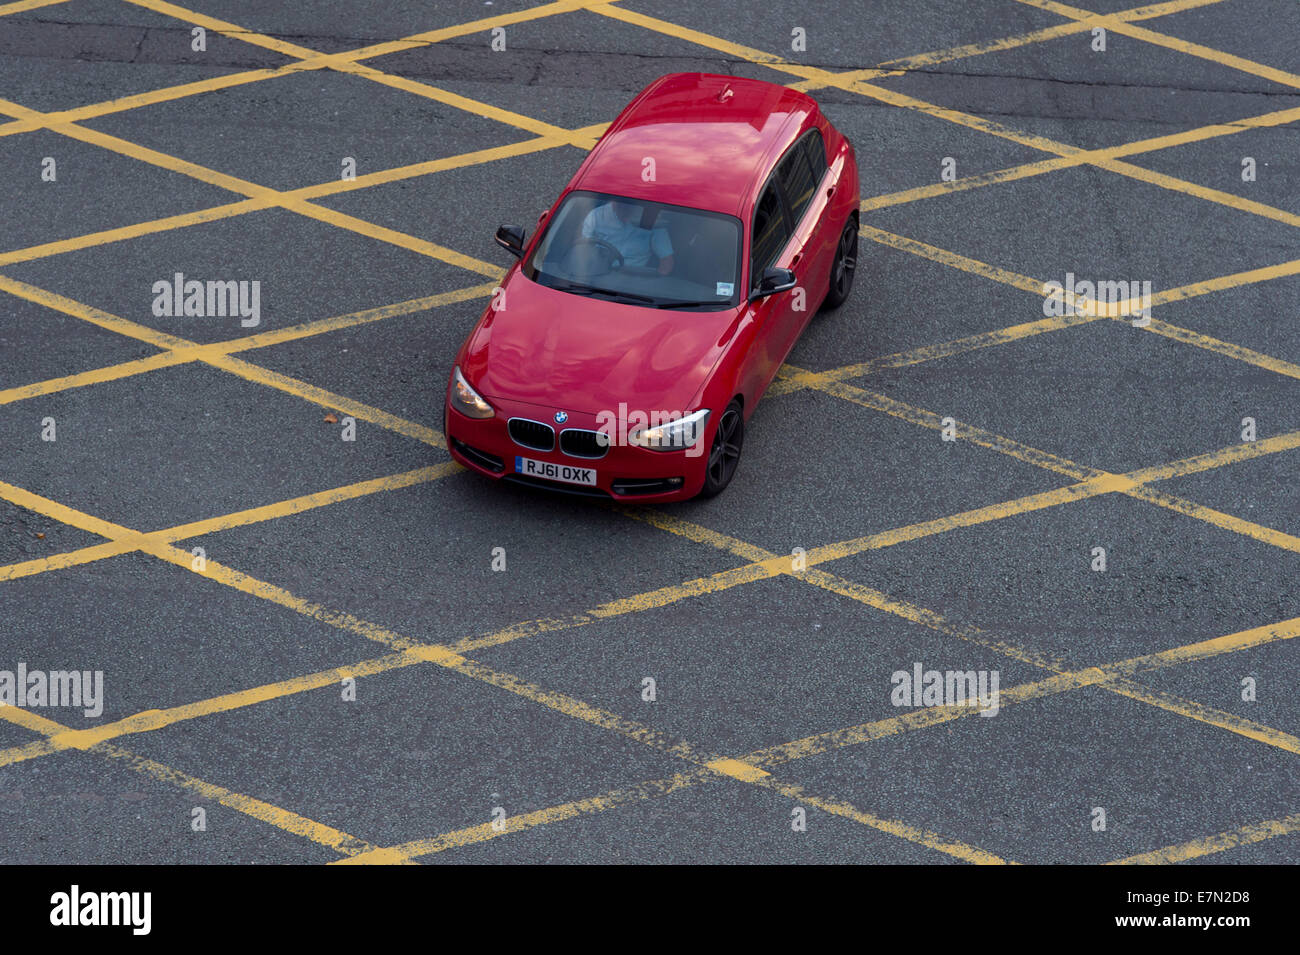 A red car in a yellow box junction. - Stock Image